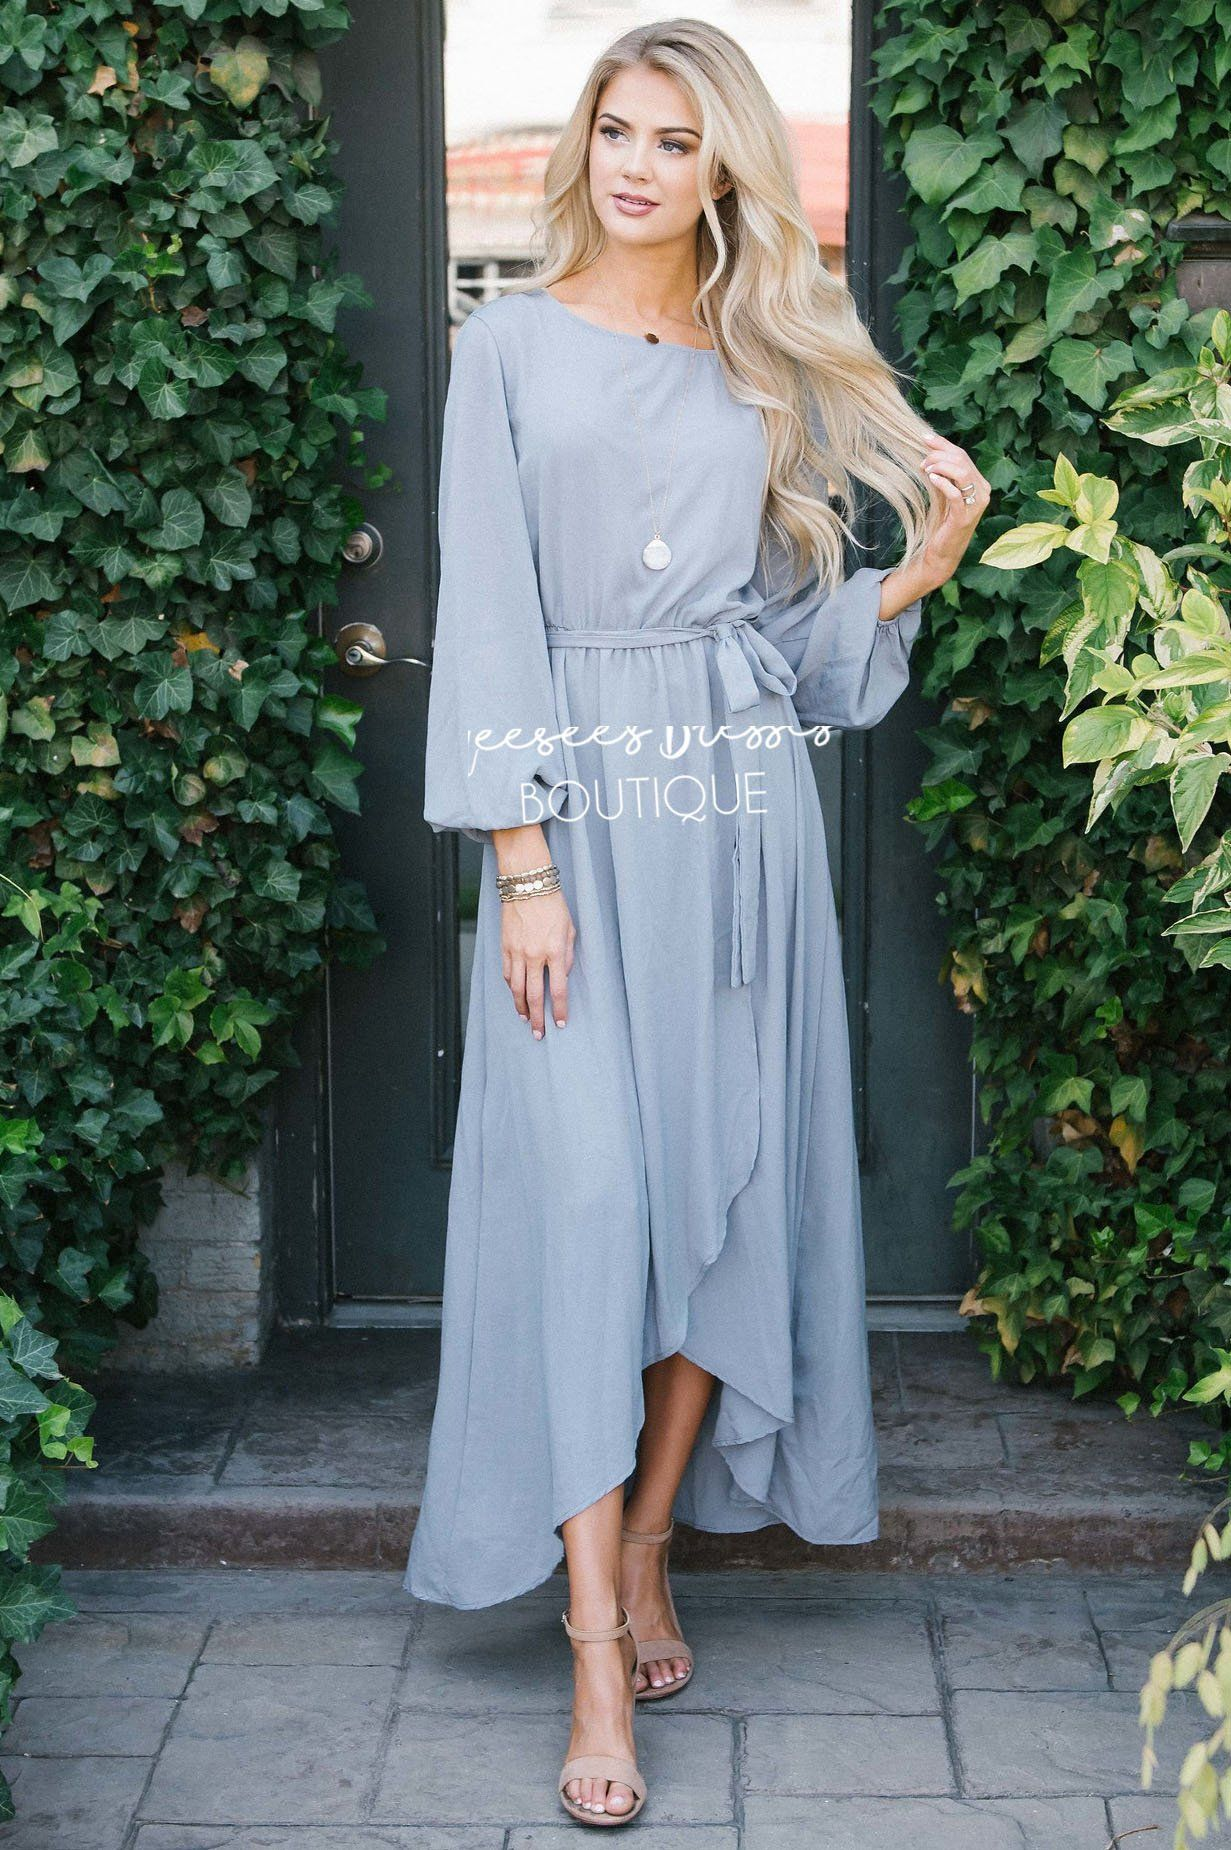 d20f94492d3e Light Gray Wrap Dress Modest Church Dress | Best and Affordable Modest  Boutique | Cute Modest Dresses and Skirts for Church - Neesee's Dresses